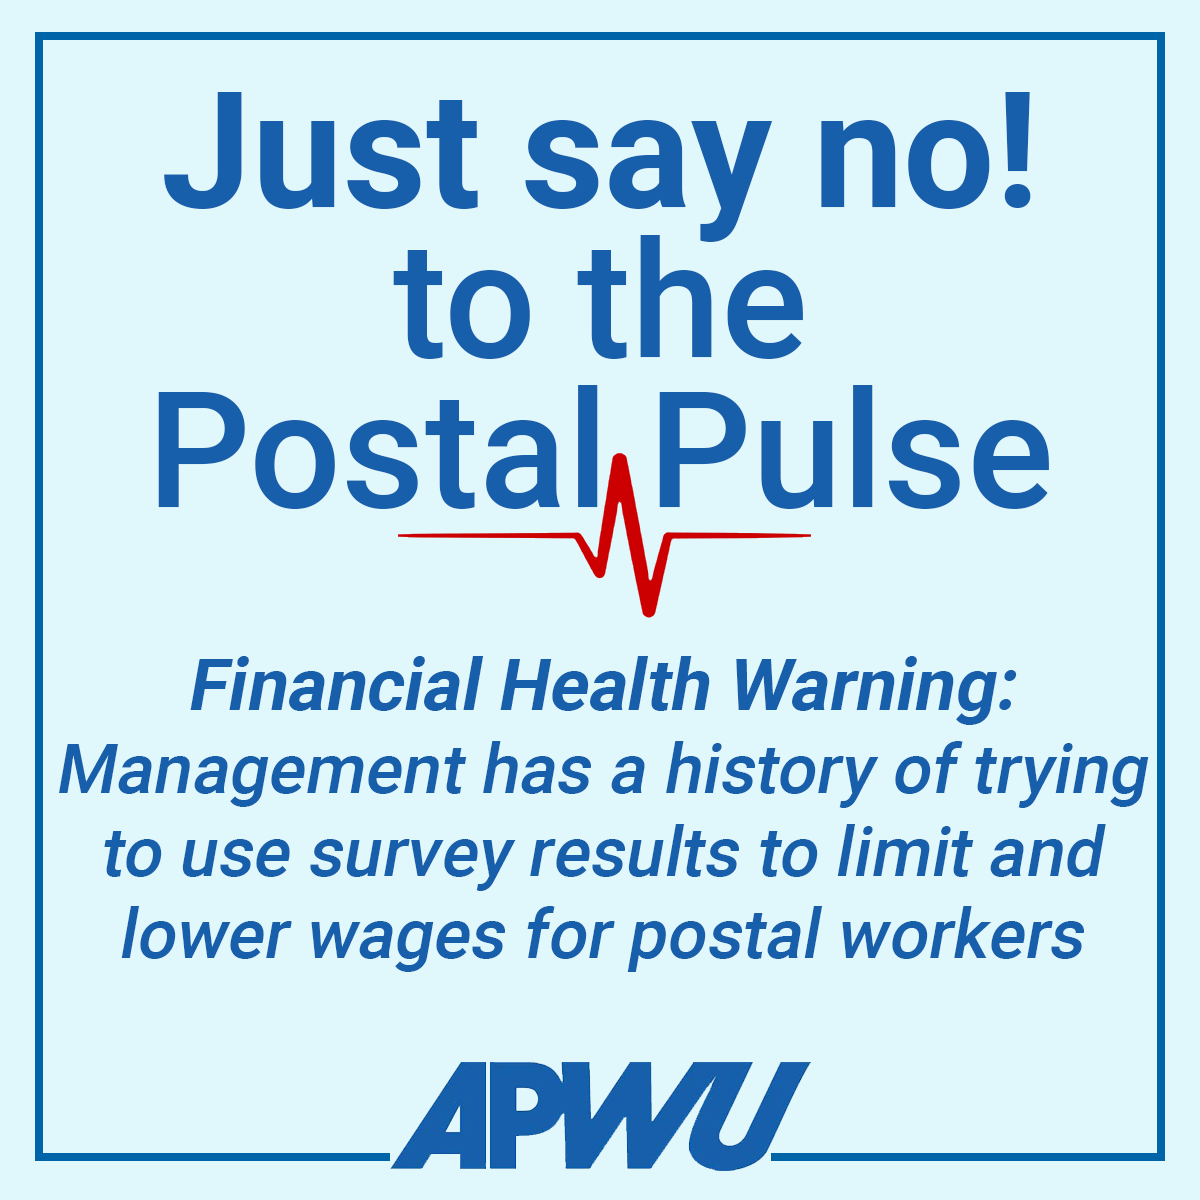 Just say no to the postal pulse. Financial Health Warning: Management has a history of using the survey results to justify lower wages for postal workers.